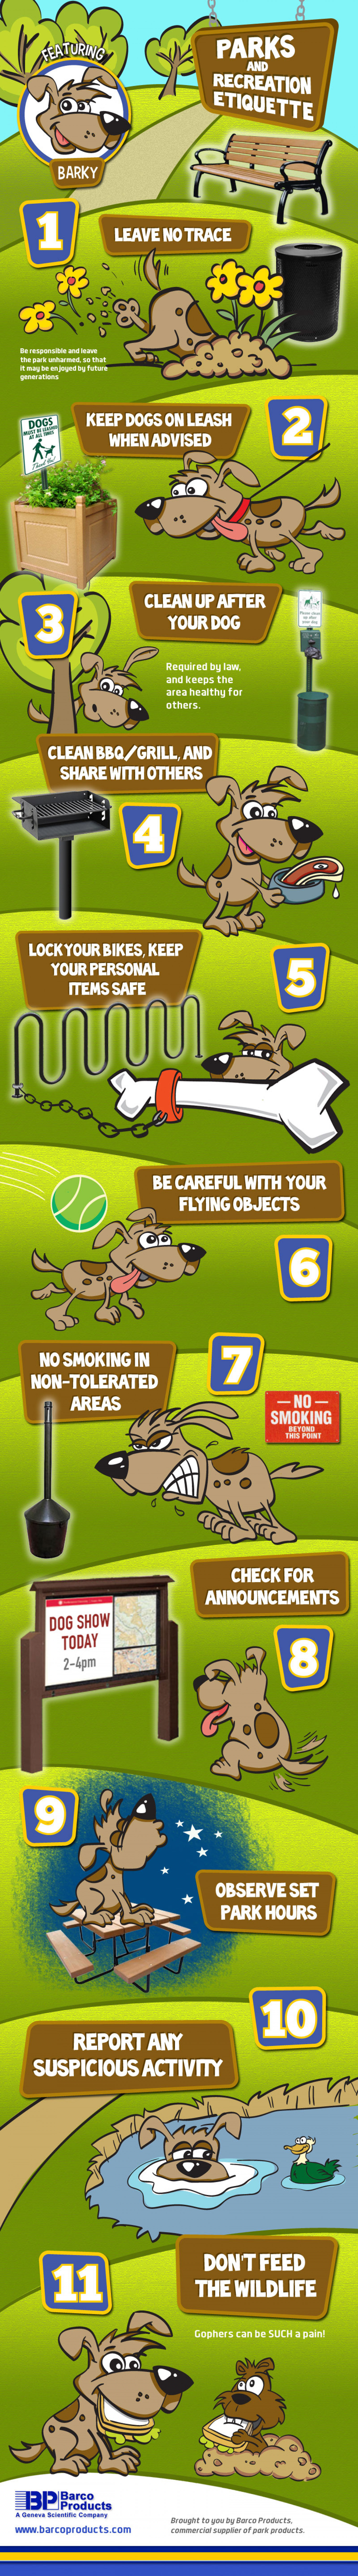 Parks and Recreation Etiquette Infographic